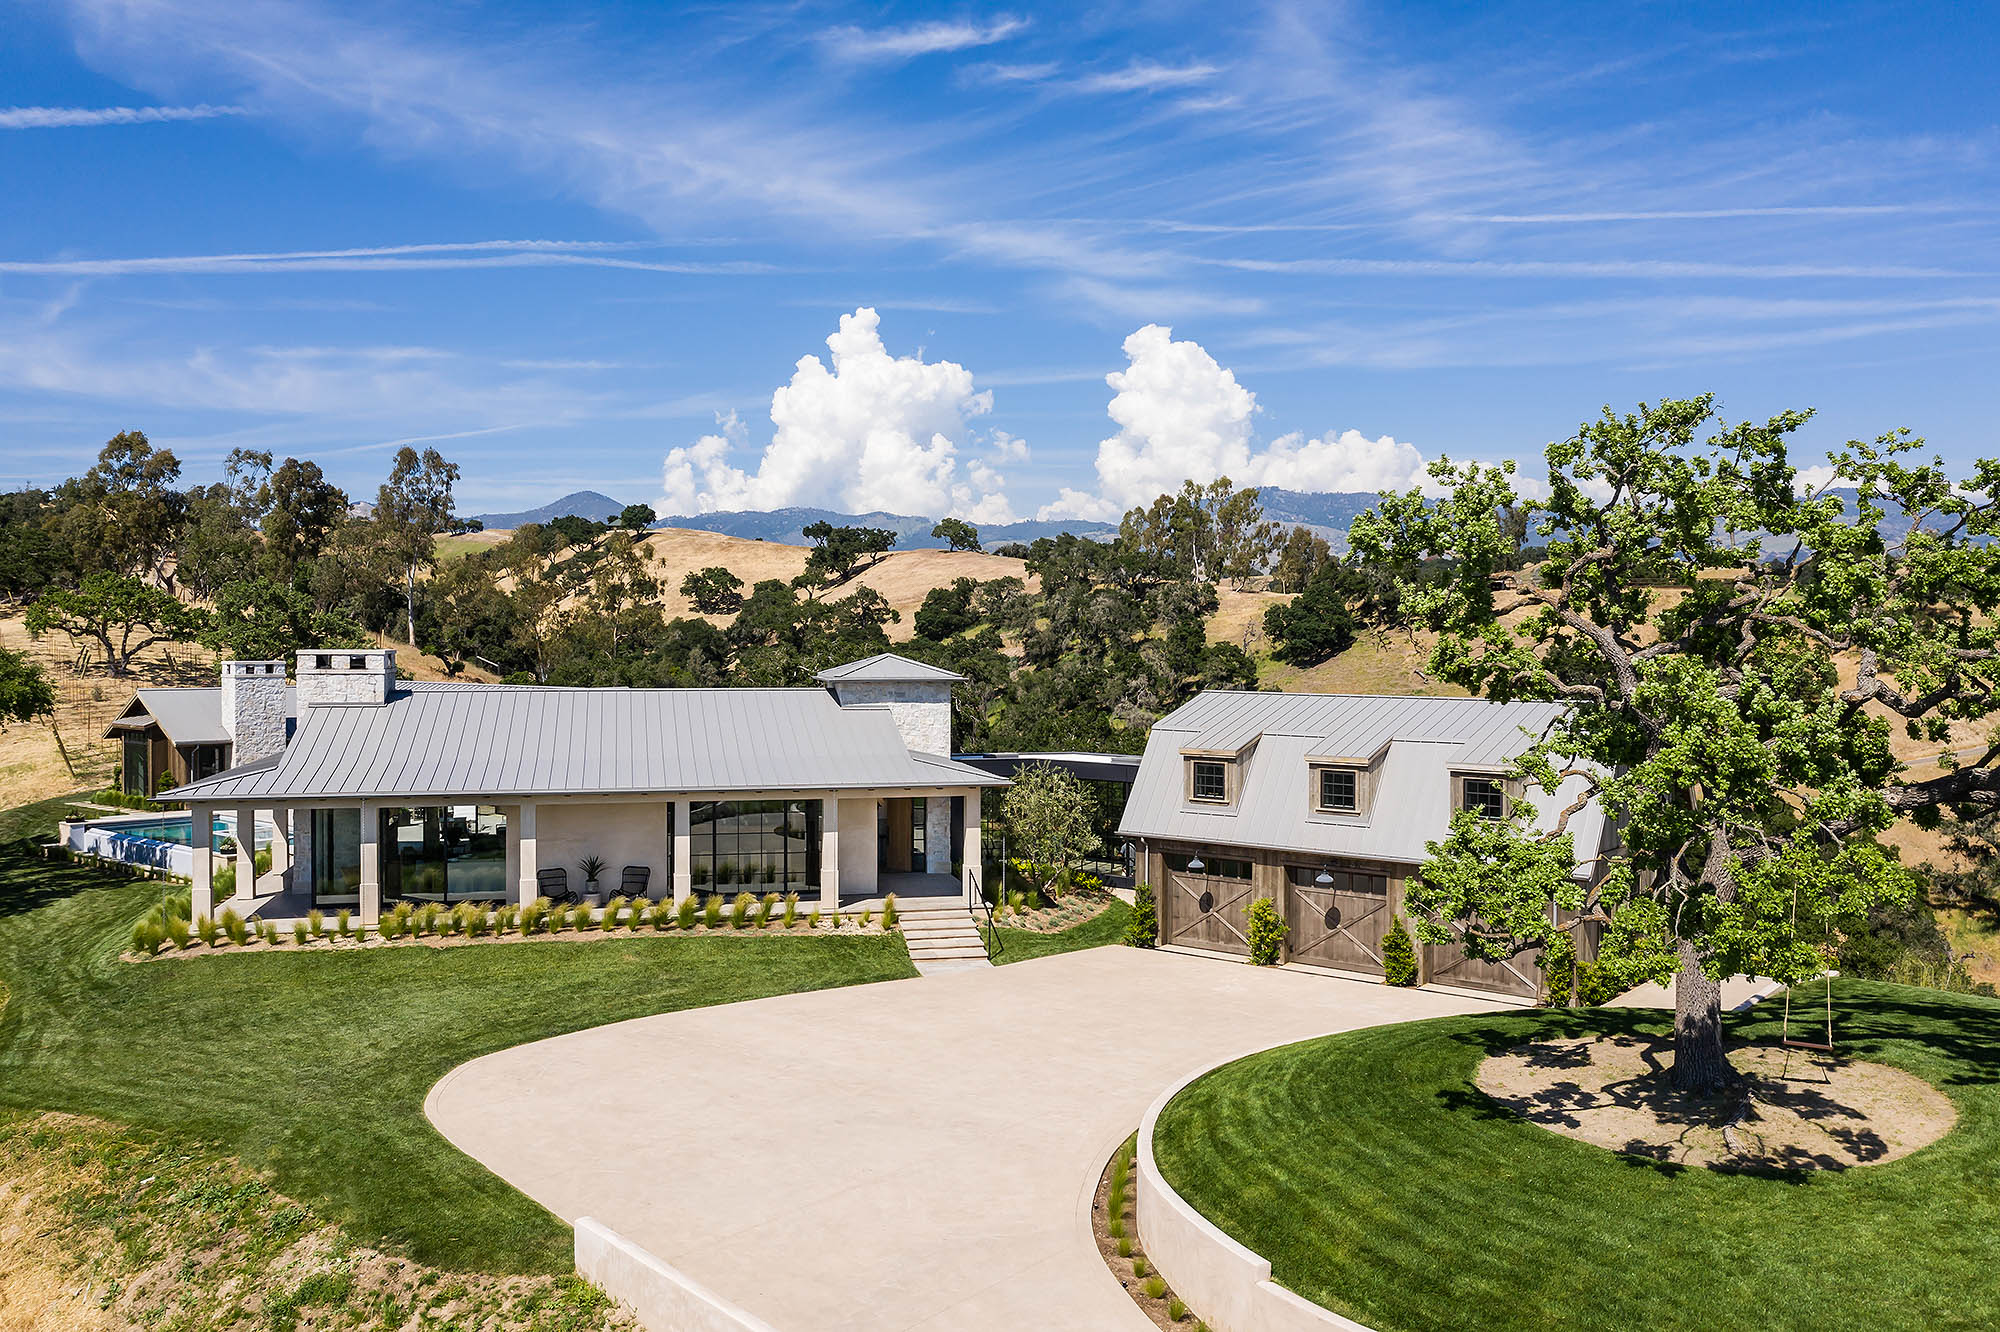 Blackband_Design_The_Farm_Santa_Ynez_Exterior-53